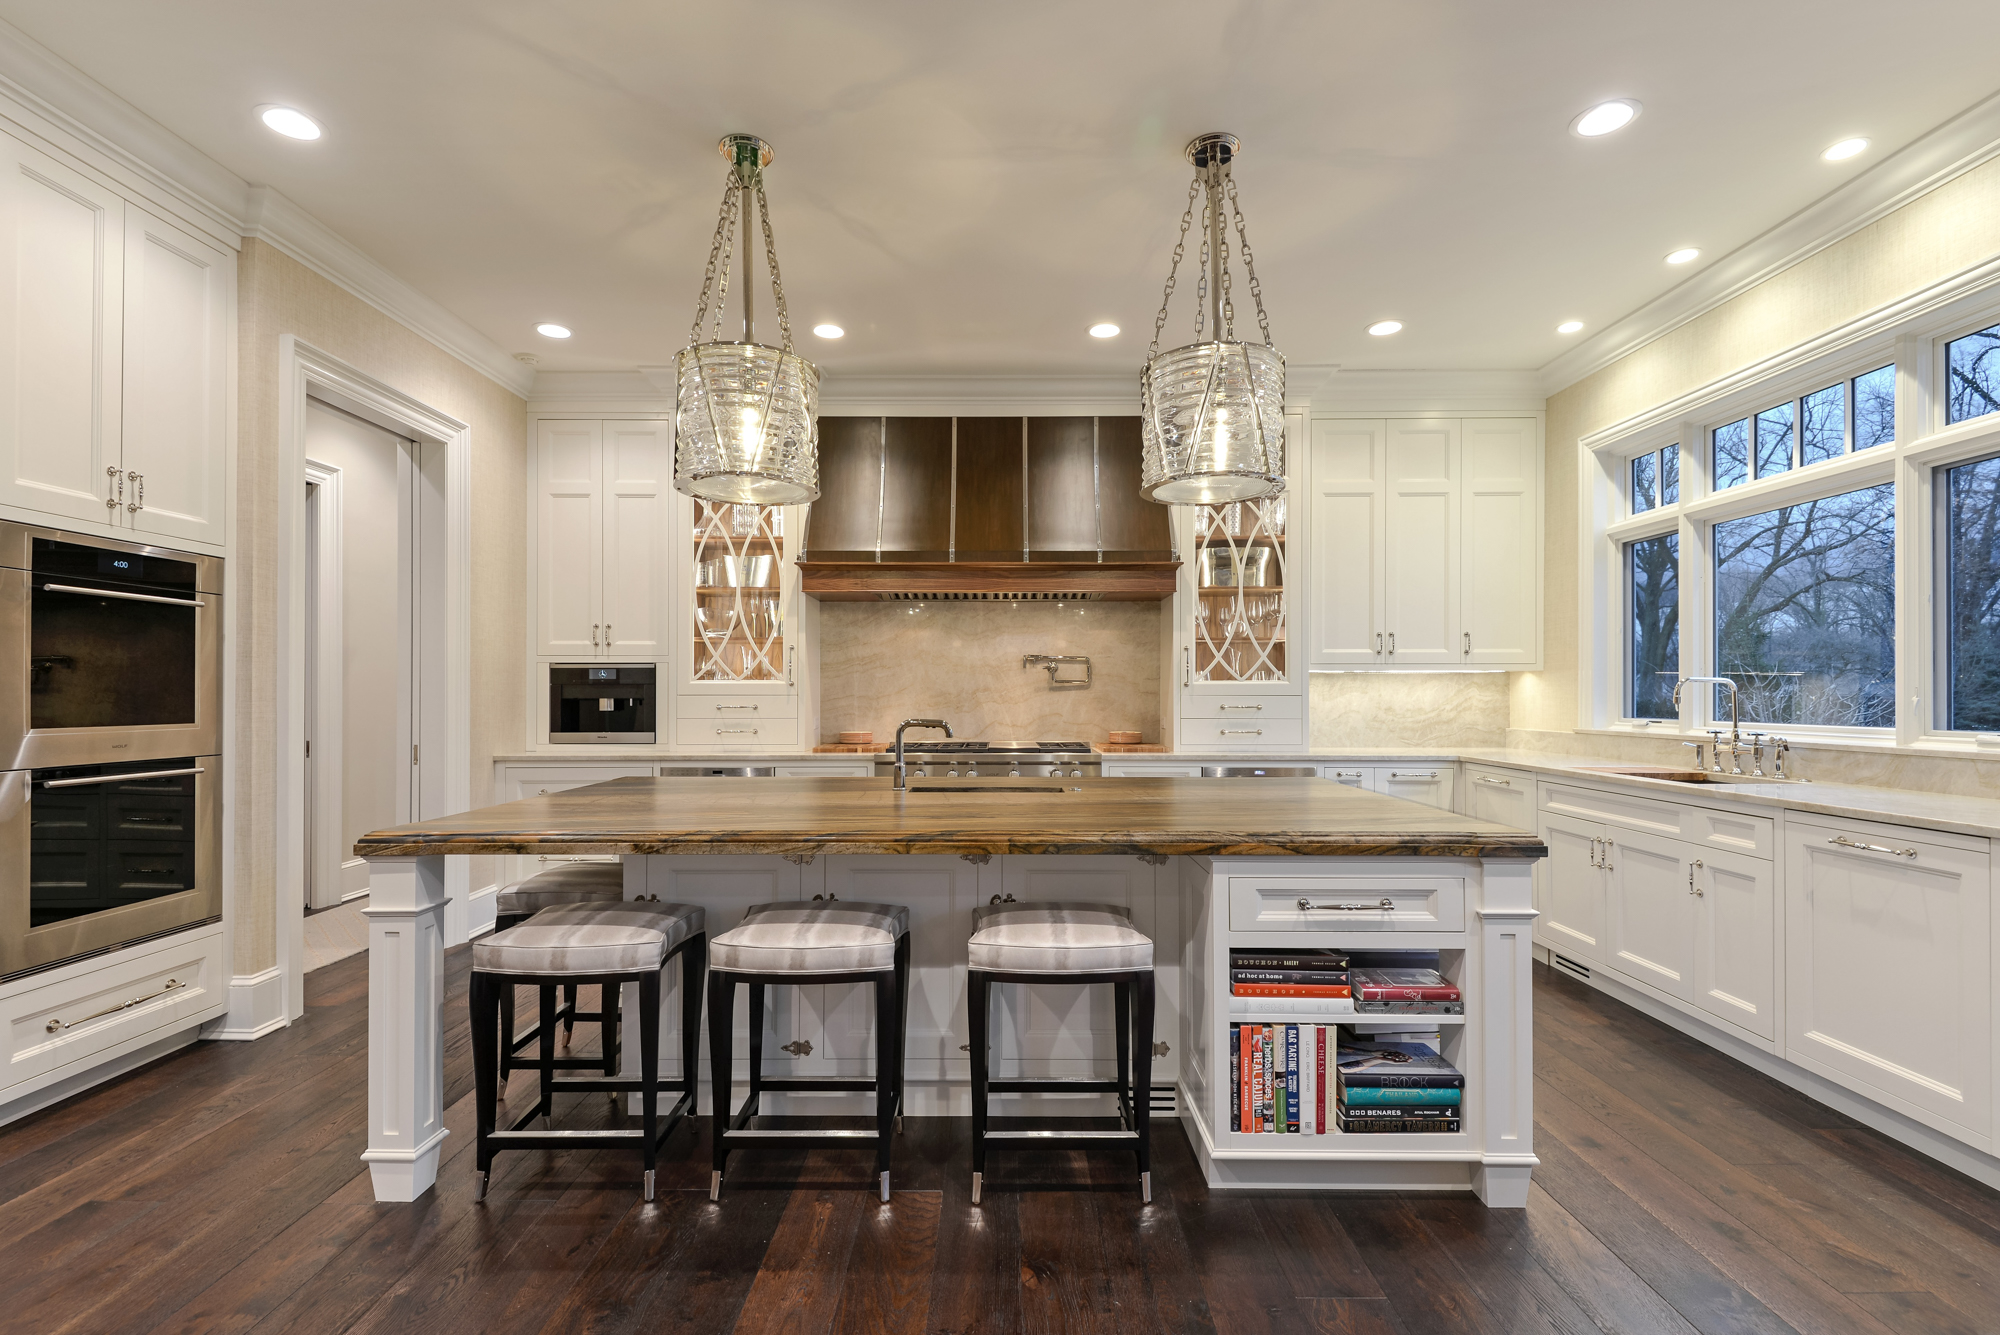 Critical Questions To Ask When Designing A Kitchen